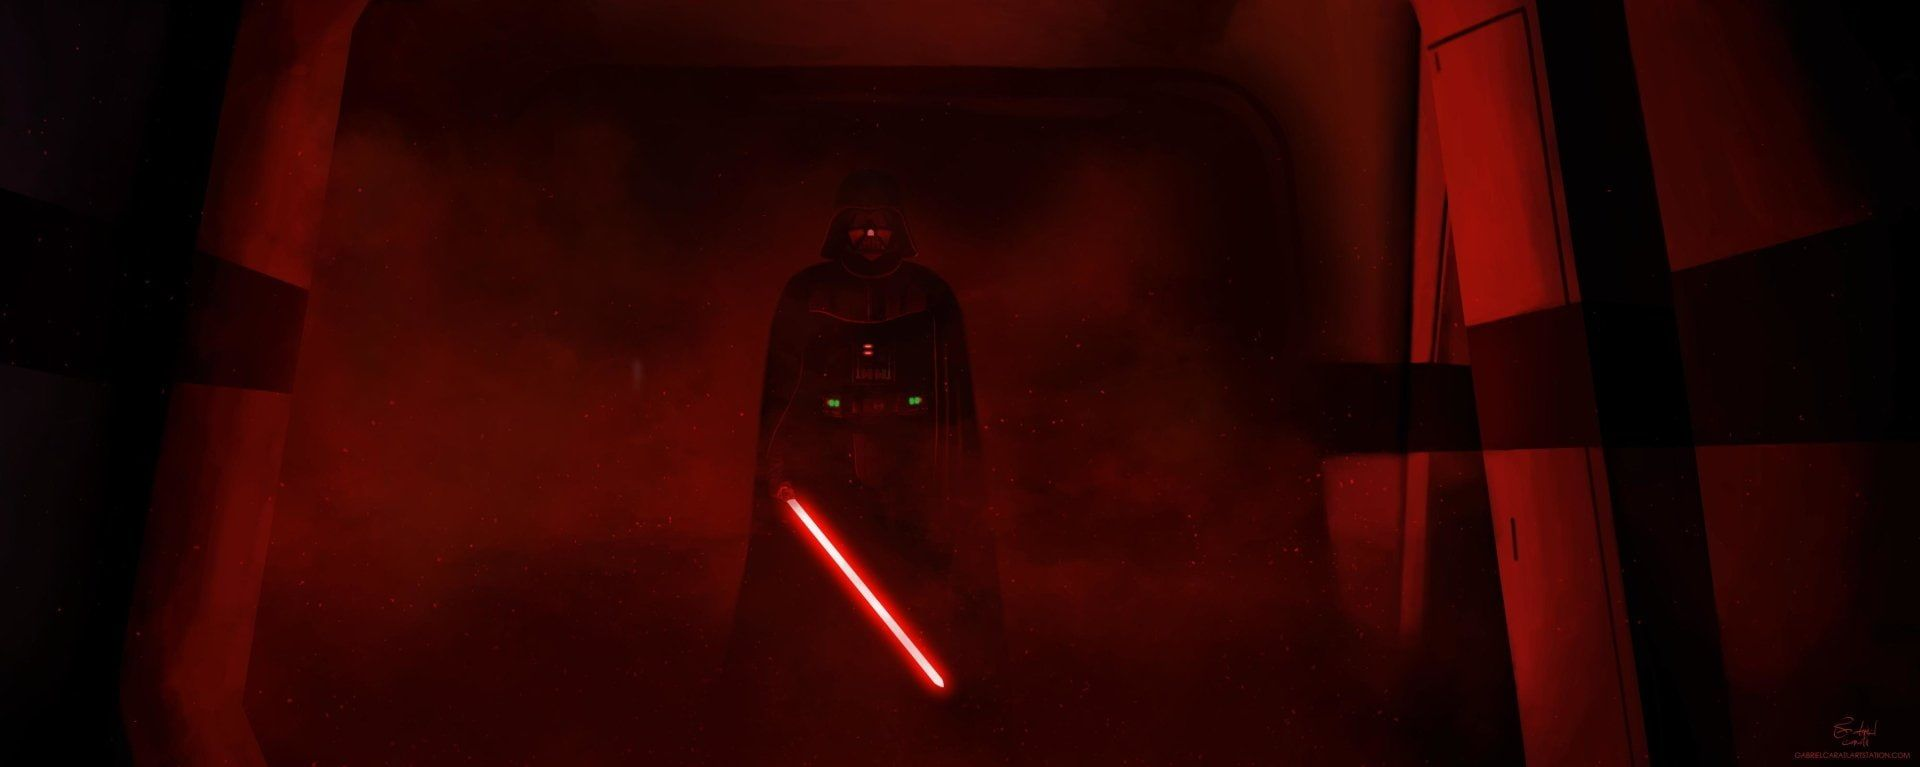 Star Wars Rogue One A Star Wars Story Darth Vader 1080p Wallpaper Hdwallpaper Desktop In 2020 Star Wars Wallpaper Darth Vader Wallpaper Darth Vader